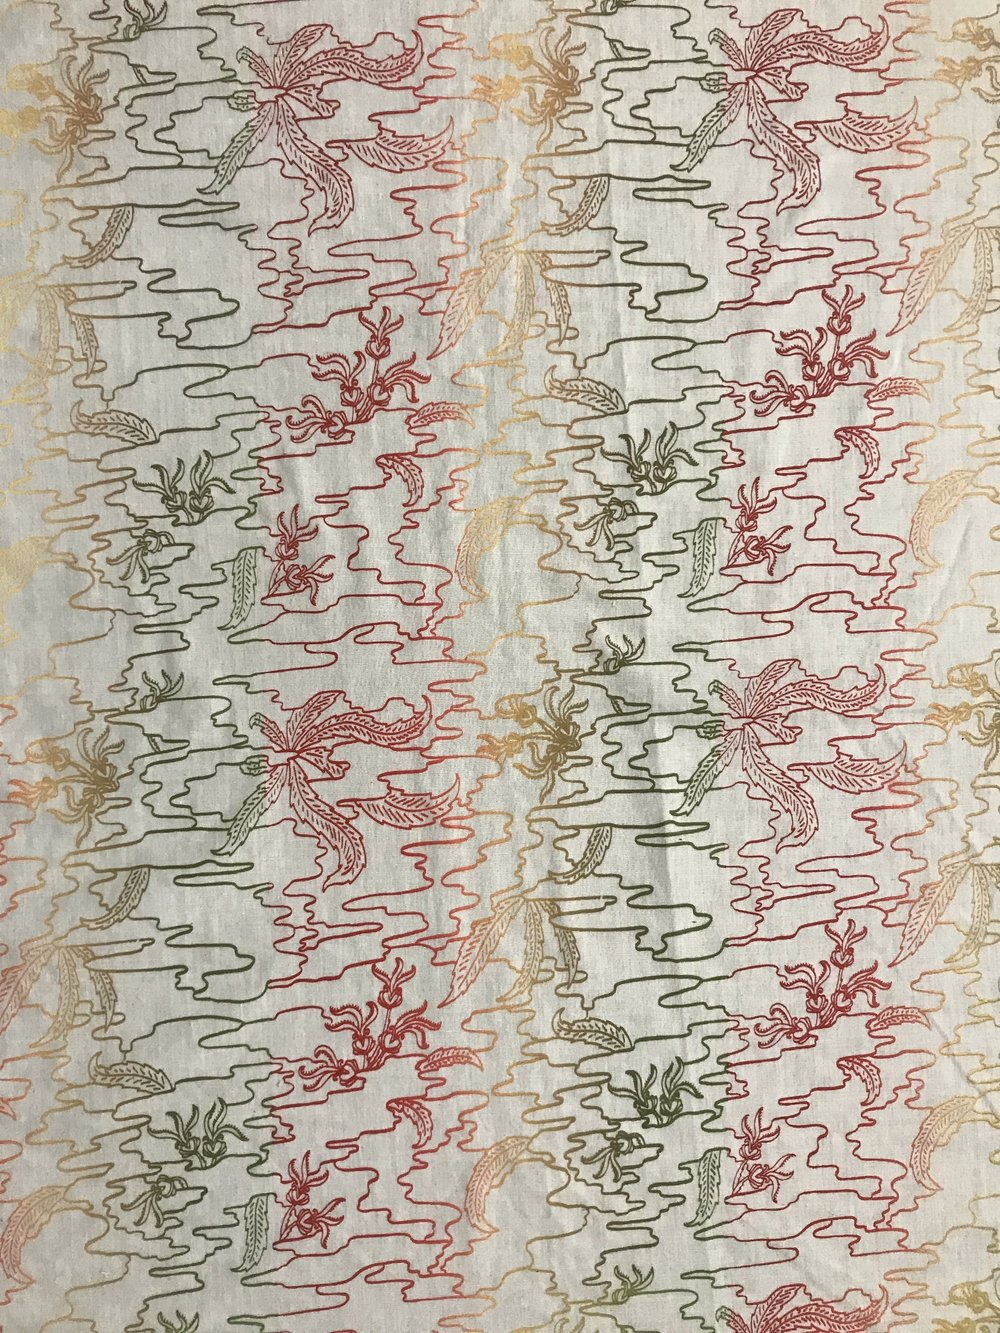 Gardener's Weed – Used Fabric